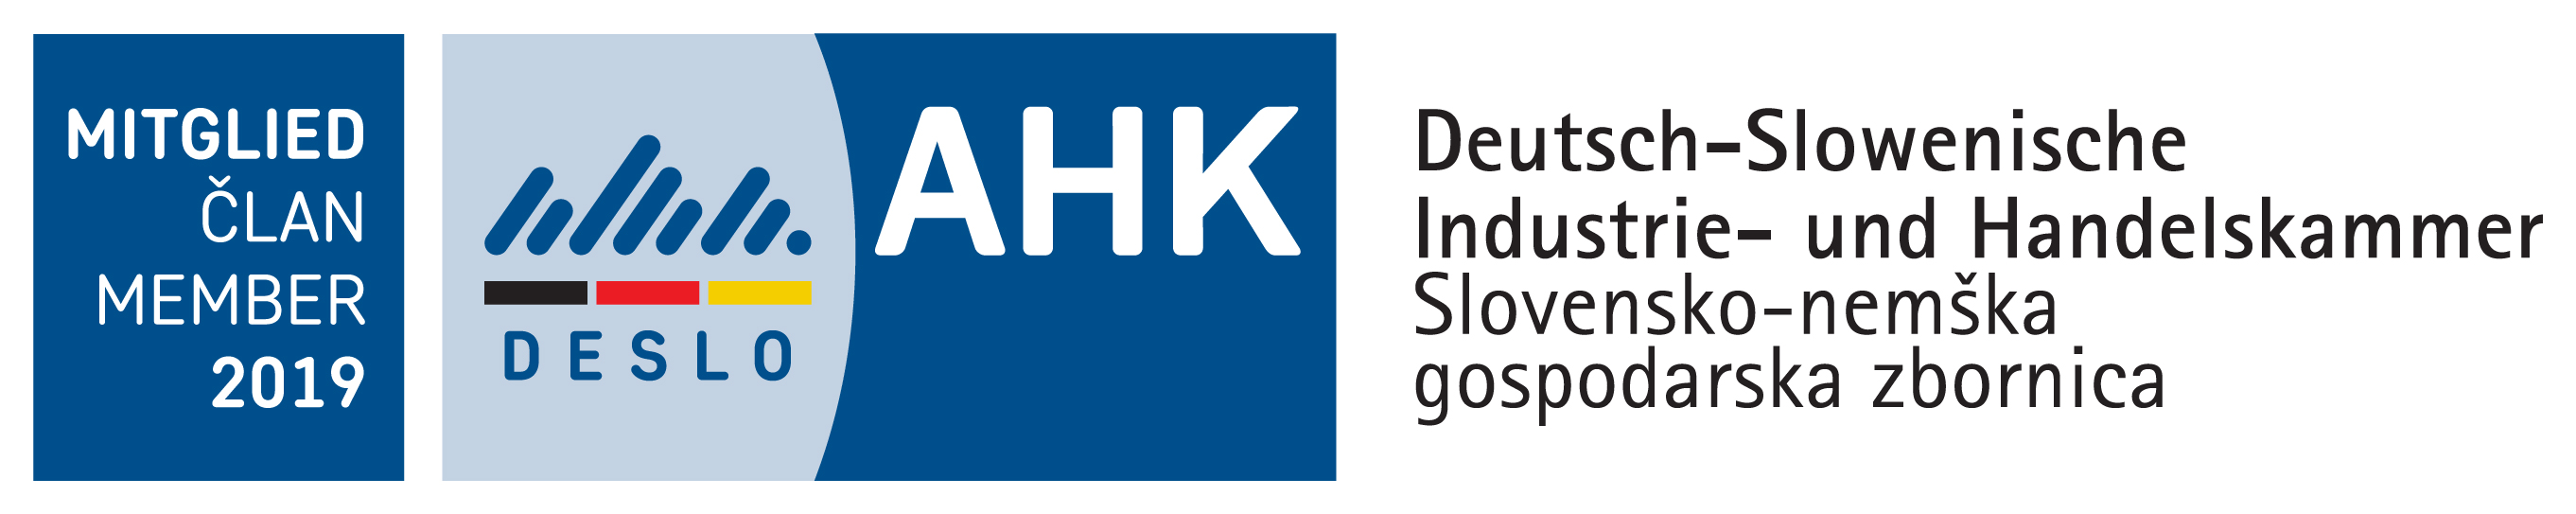 DE-SLO - German-Slovene Chamber of Commerce and Industry